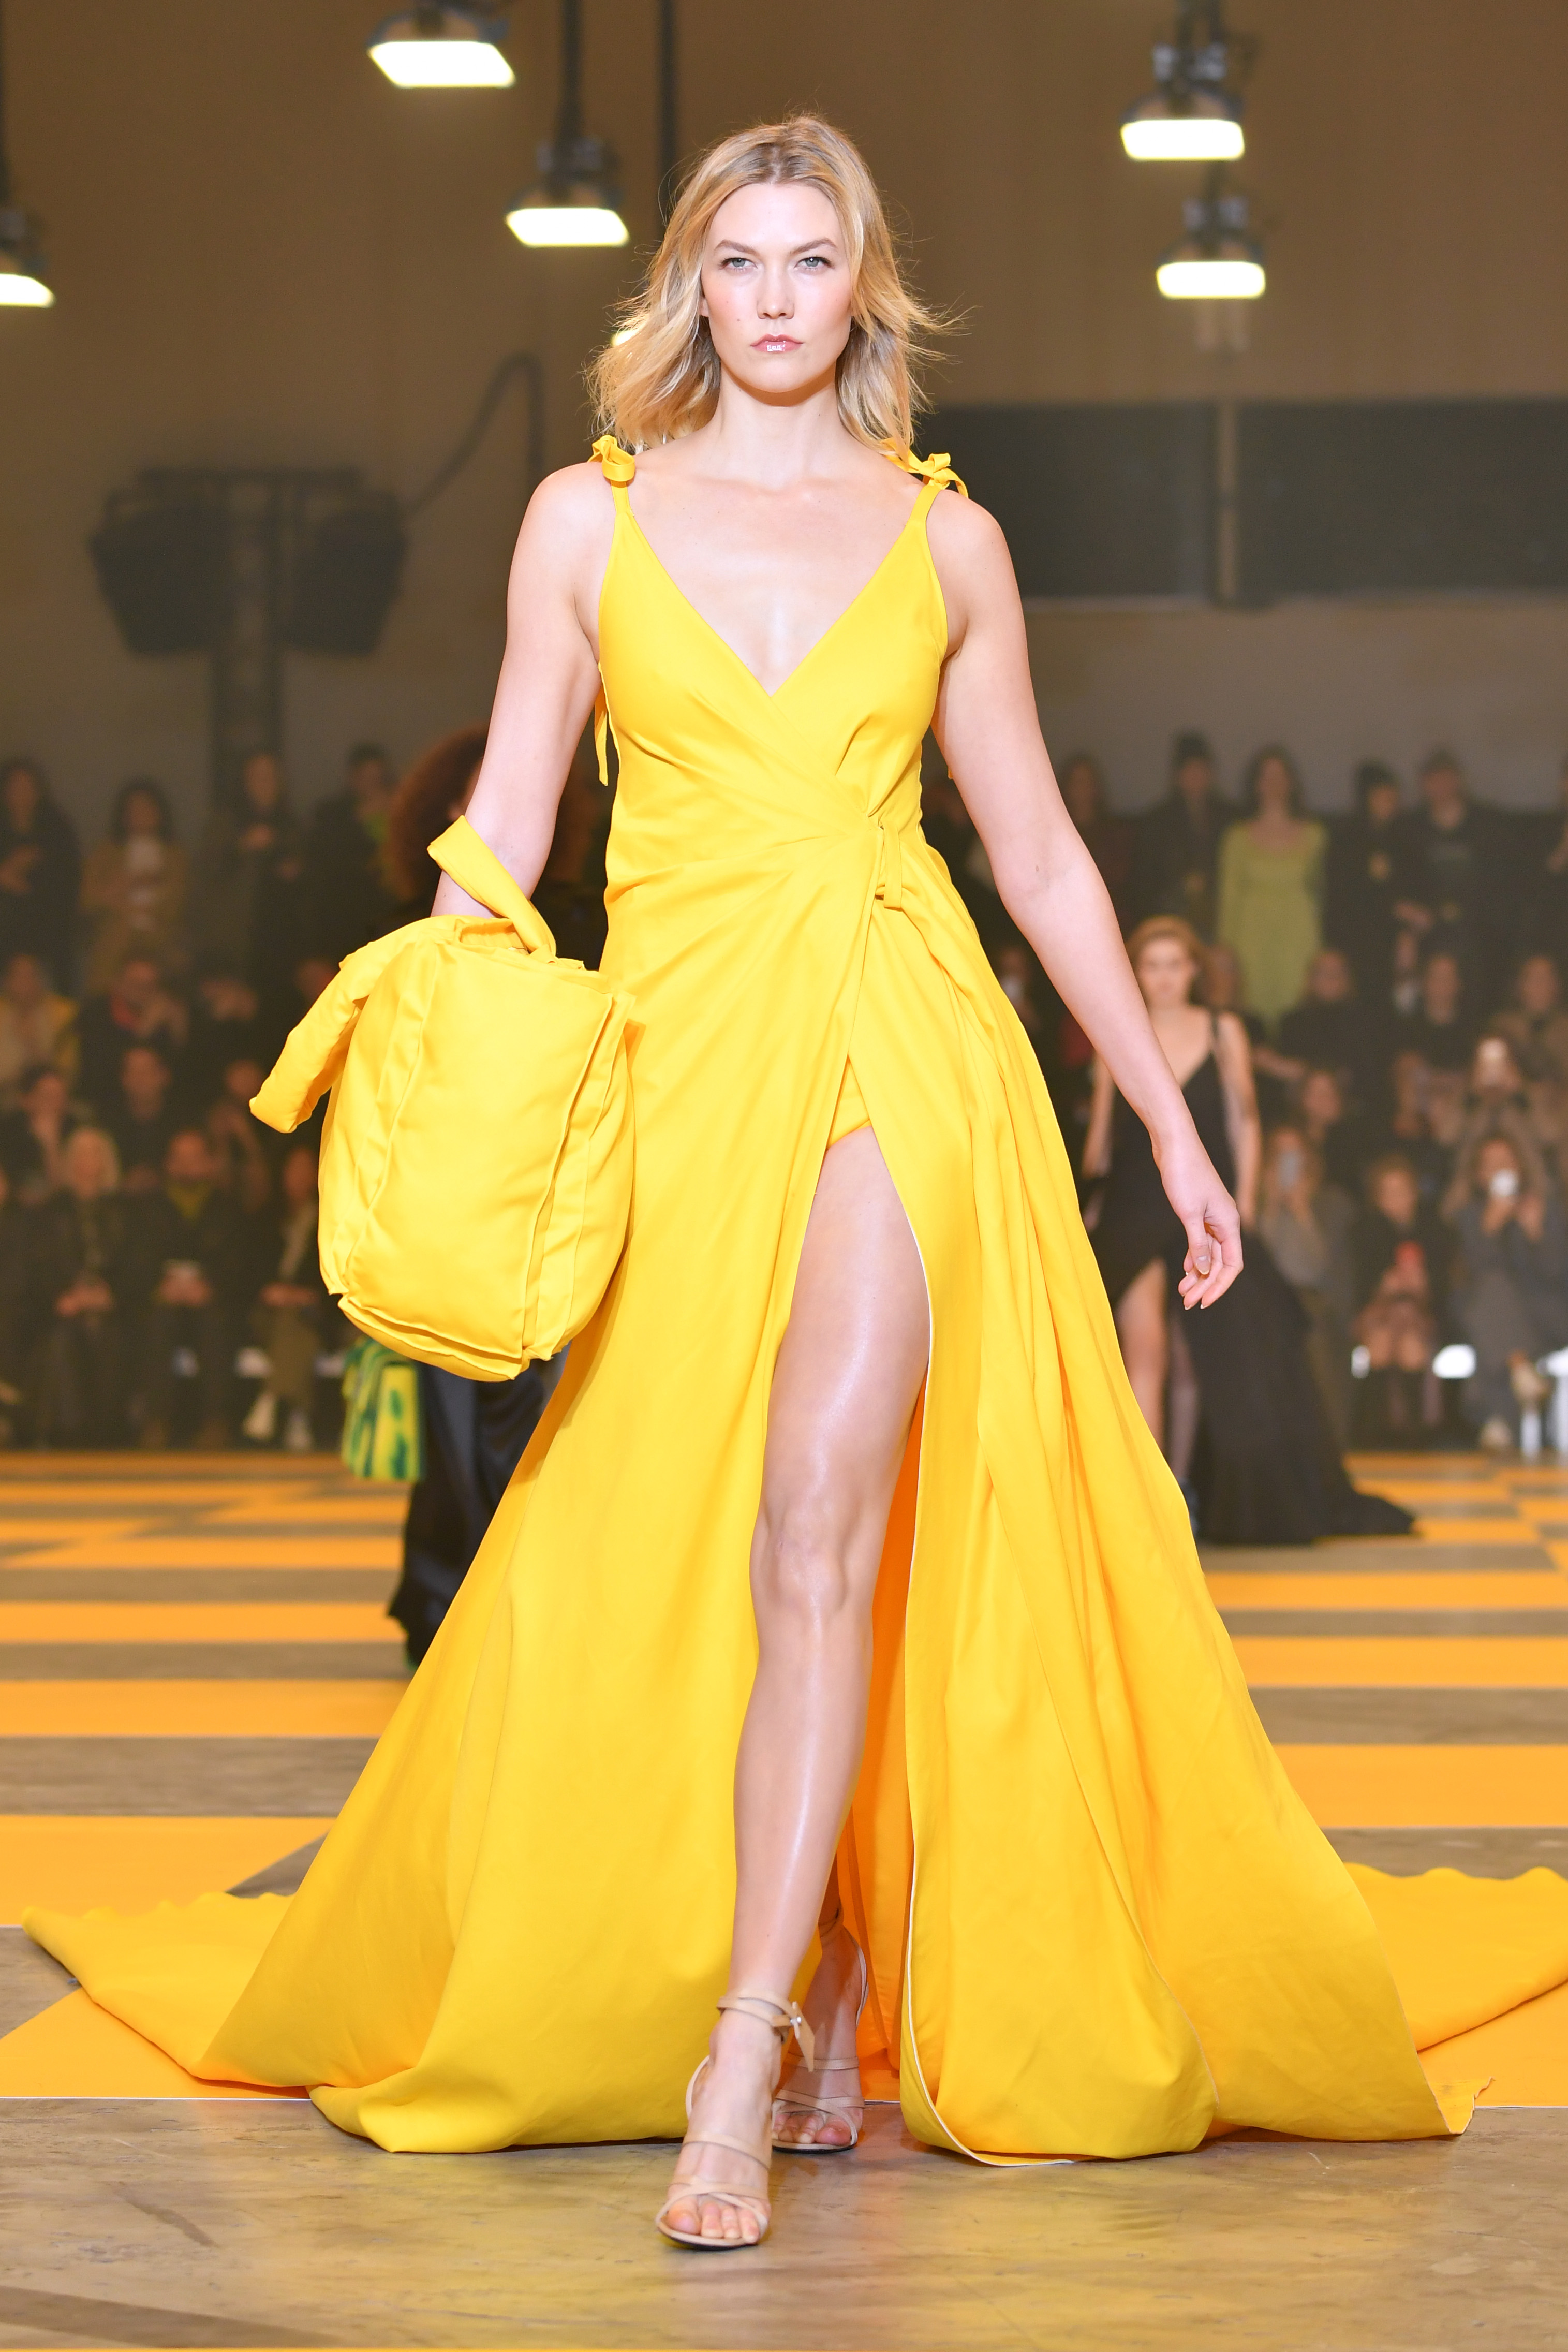 Karlie Kloss walks the runway during the Off-White show as part of the Paris Fashion Week Womenswear Fall/Winter 2019/2020 on February 28, 2019 in Paris, France.